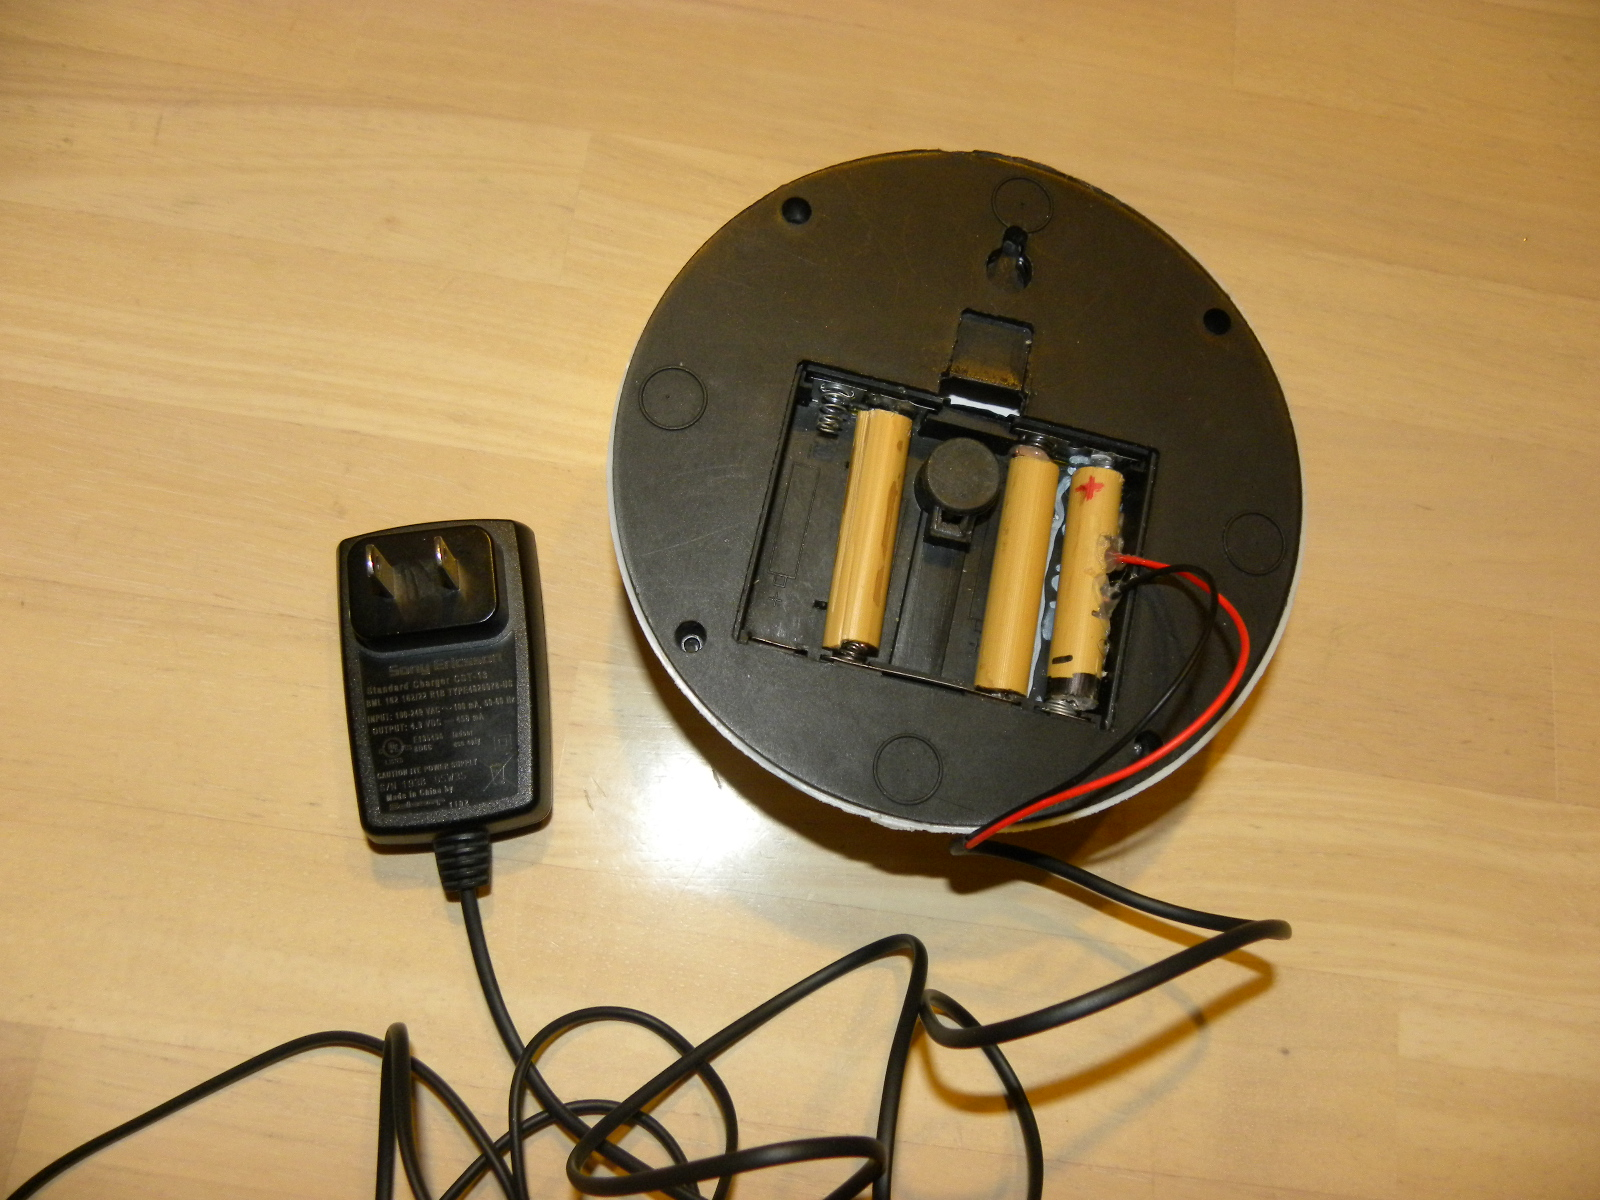 Using an DC Adapter for Battery Powered Device